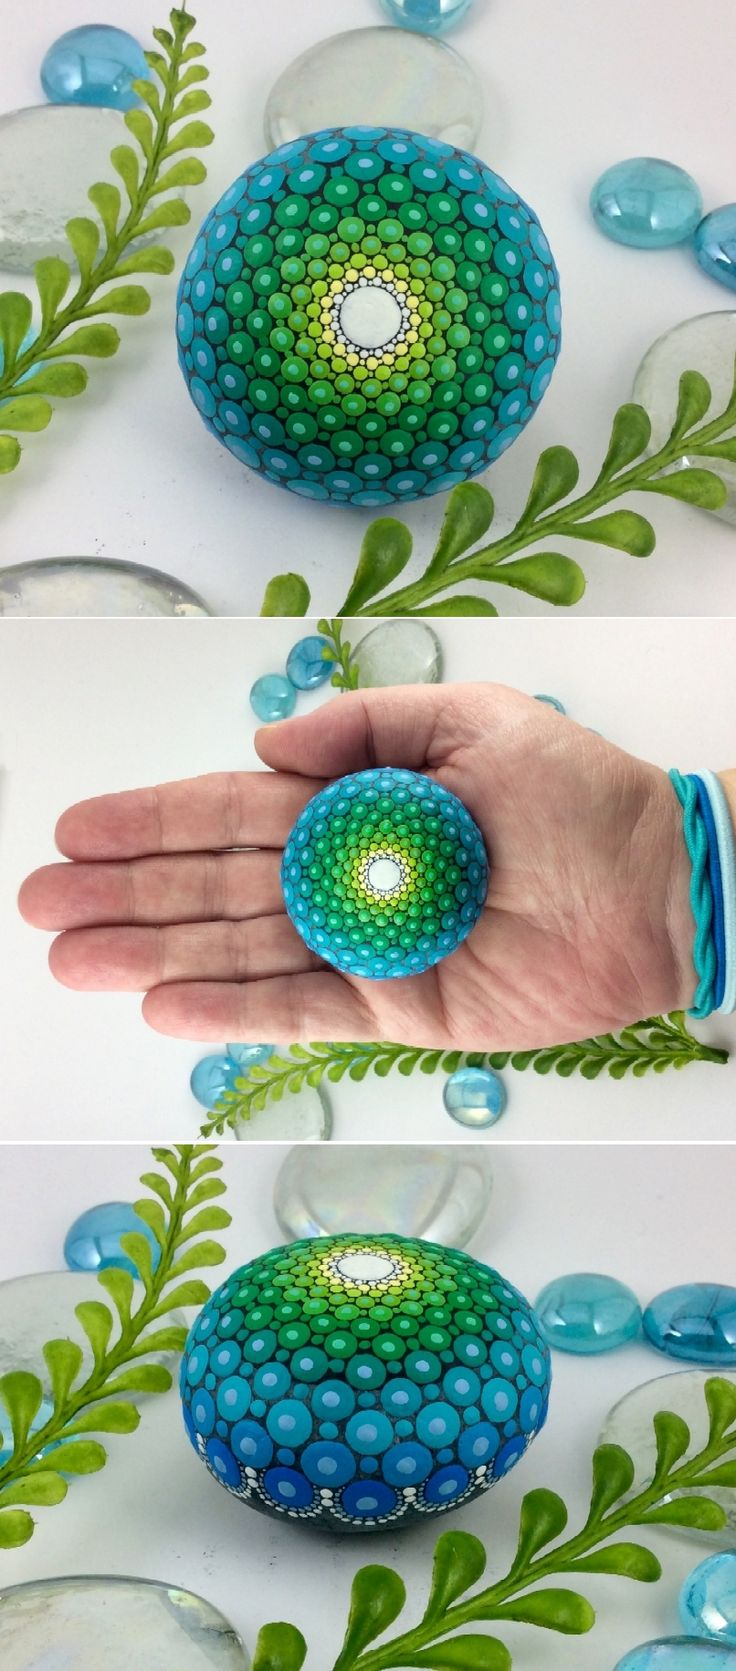 """Mandala Stone (Mini) by Kimberly Vallee: Hand painted with acrylic and protected with a matt finish, this cute little """"Mini"""" Dot Painted Mandala Stone is between 1.5"""" and 2"""" wide. It is one-of-a-kind."""